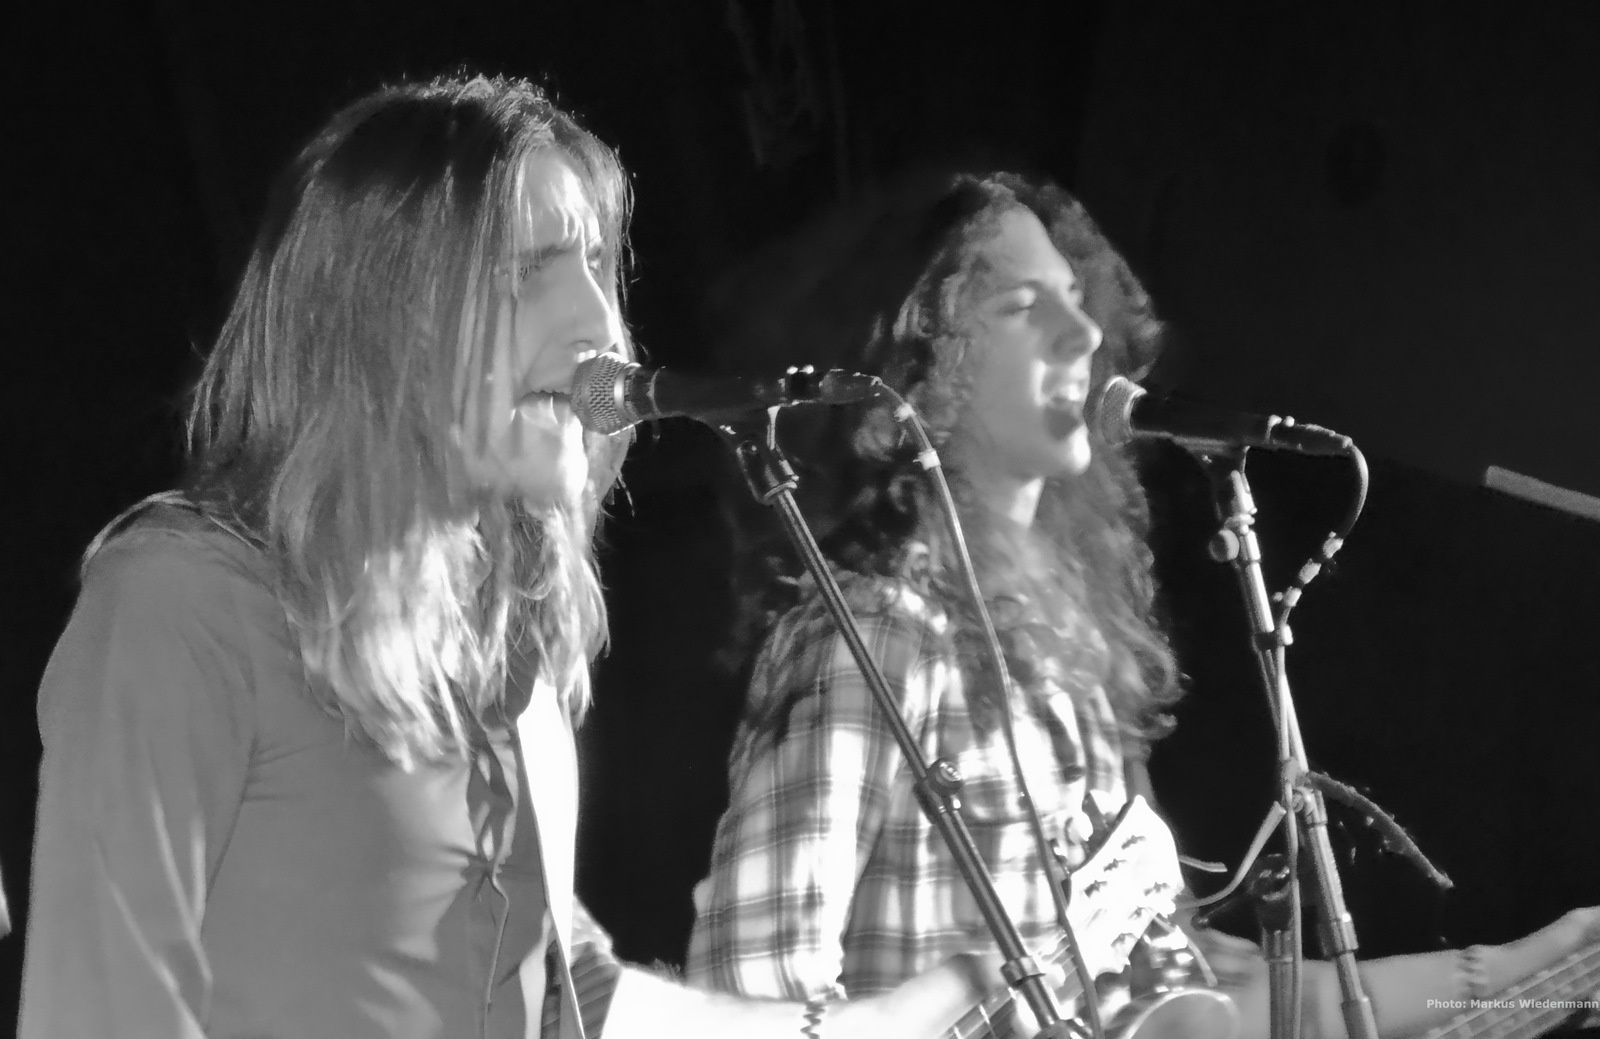 Live review AUDREY HORNE, '77, and PET THE PREACHER, Baroeg, Rotterdam, 29.11.2014